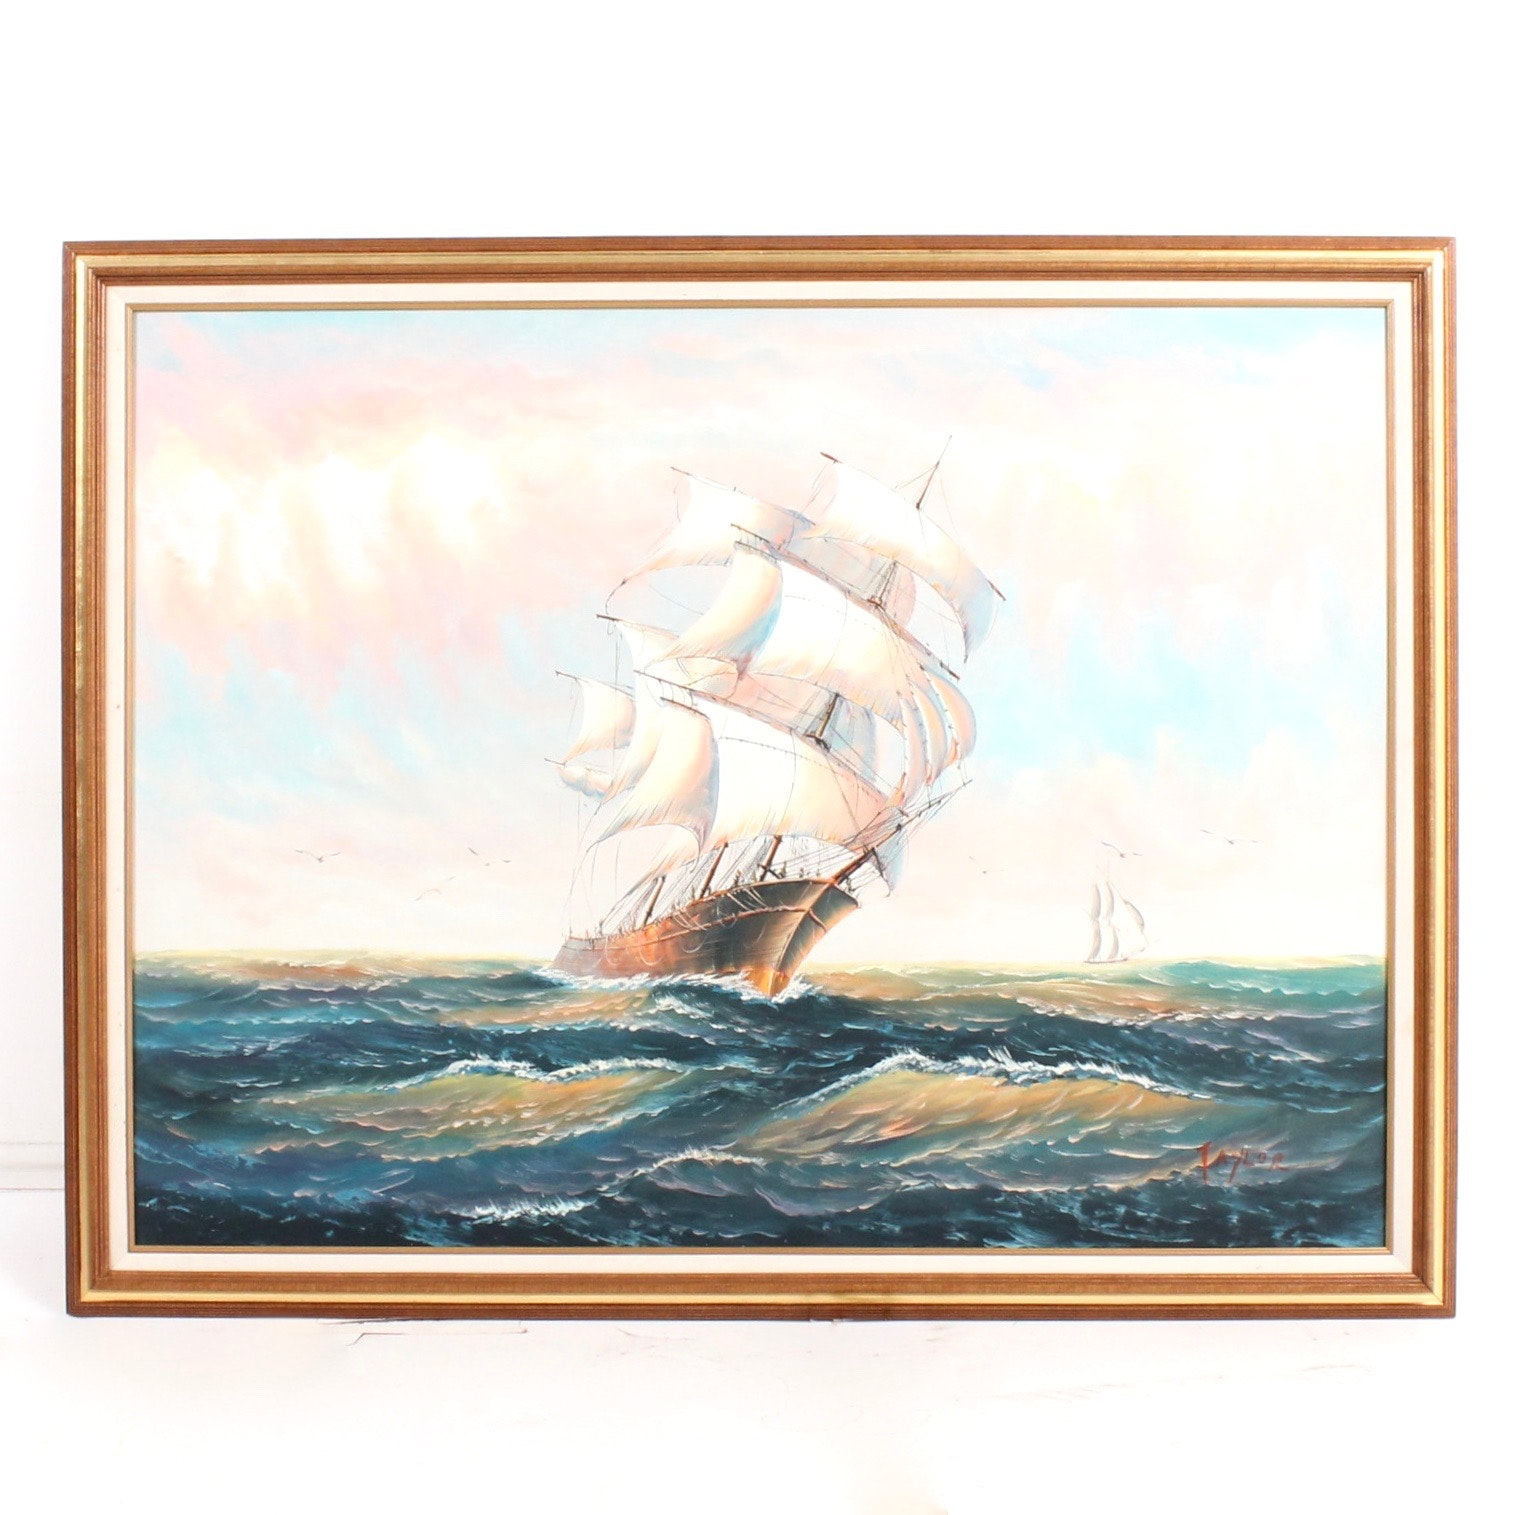 Taylor Large Scale Oil Seascape Painting on Canvas